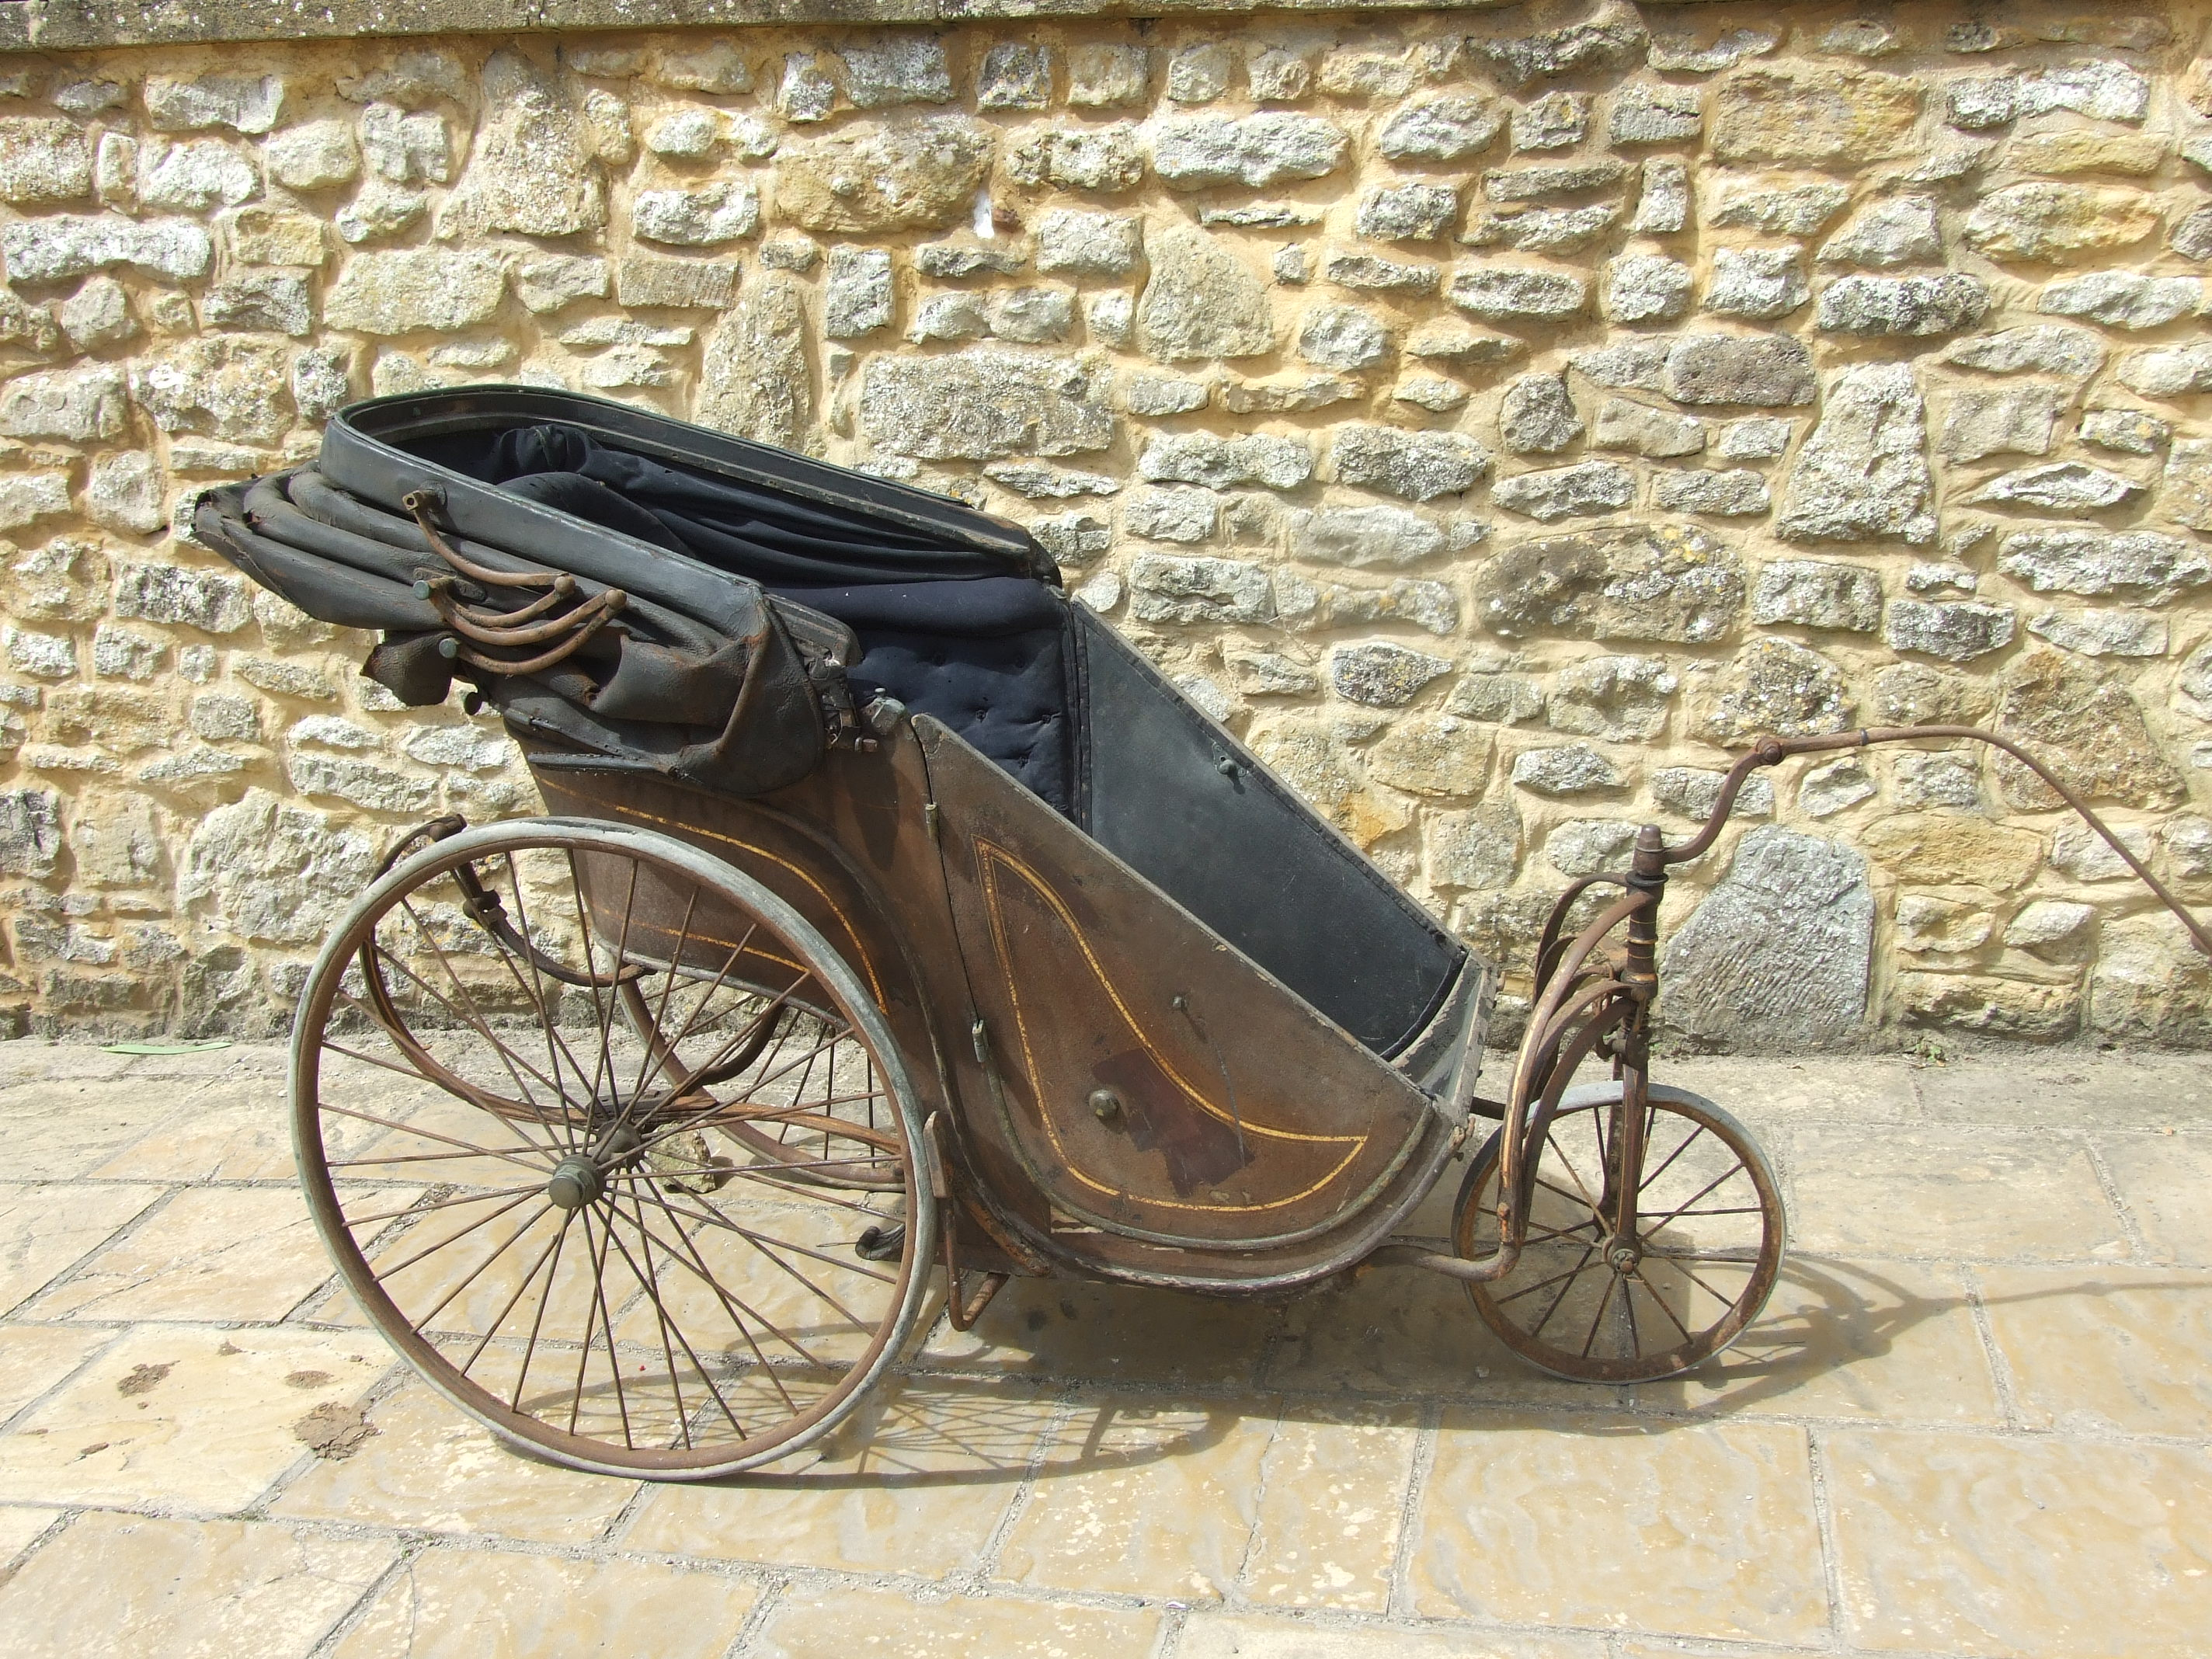 A Victorian bath chair with tilter steering and pram hood for